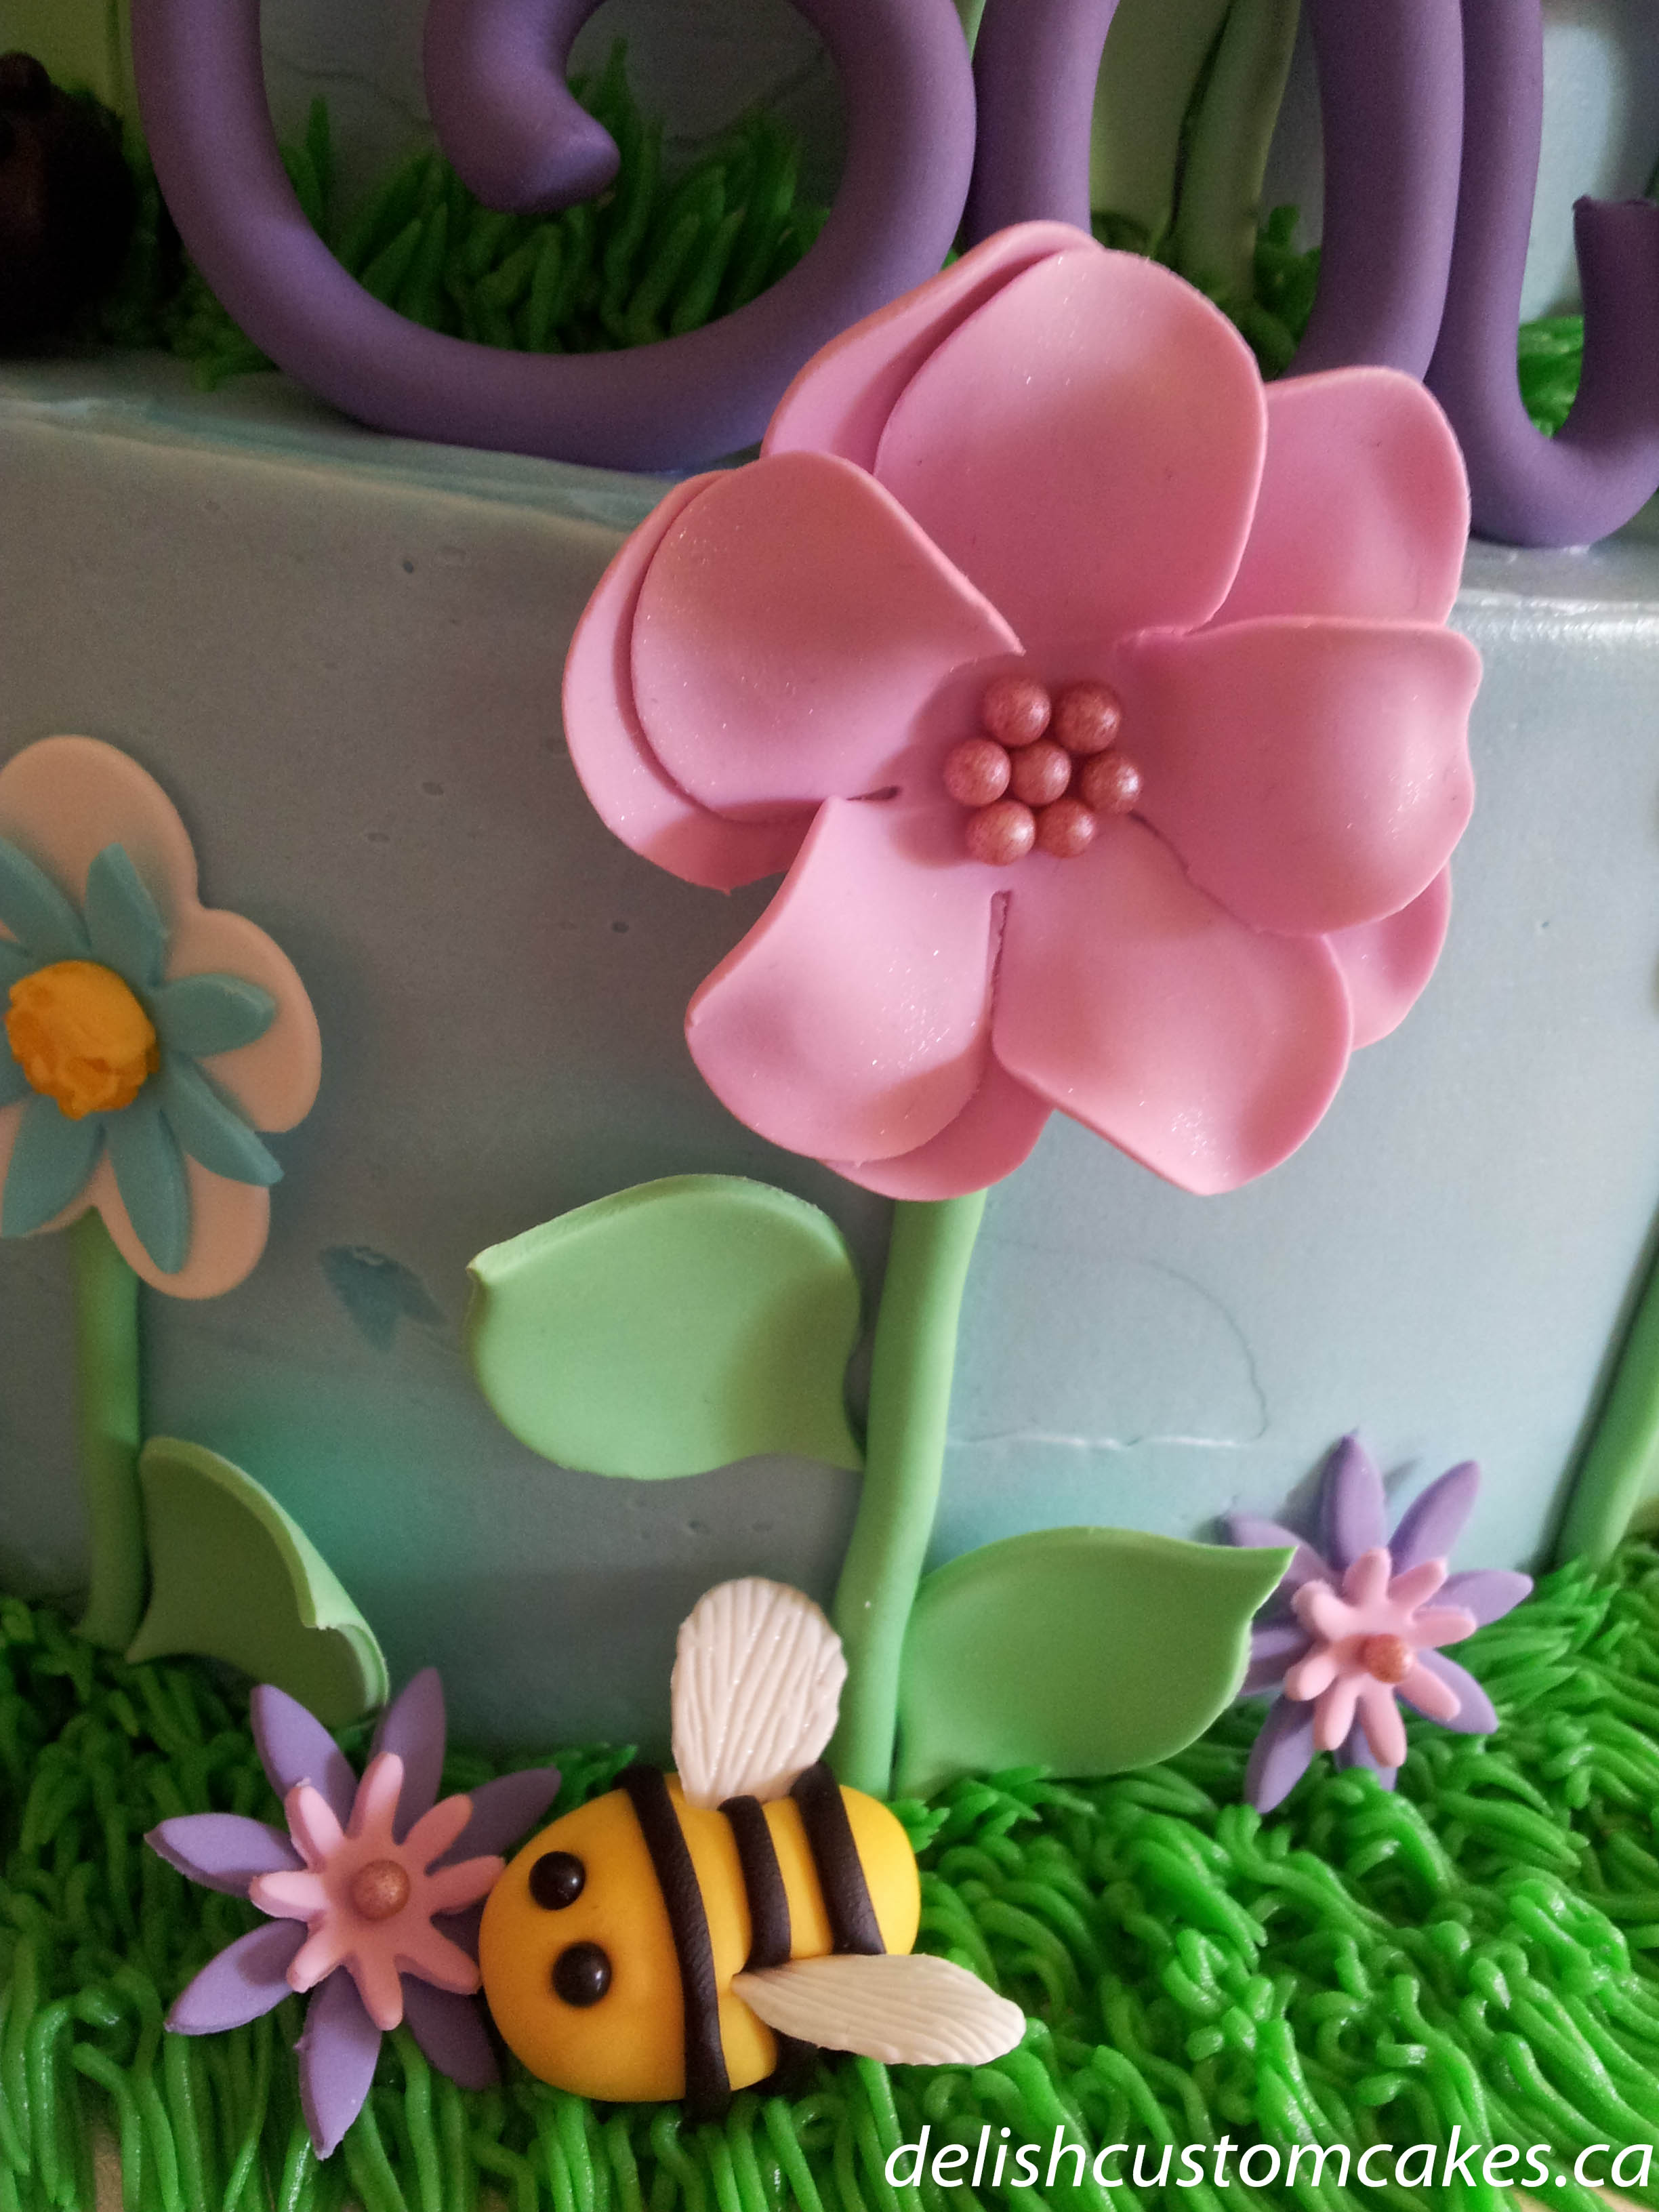 Flowers and bugs delish custom cakes i izmirmasajfo